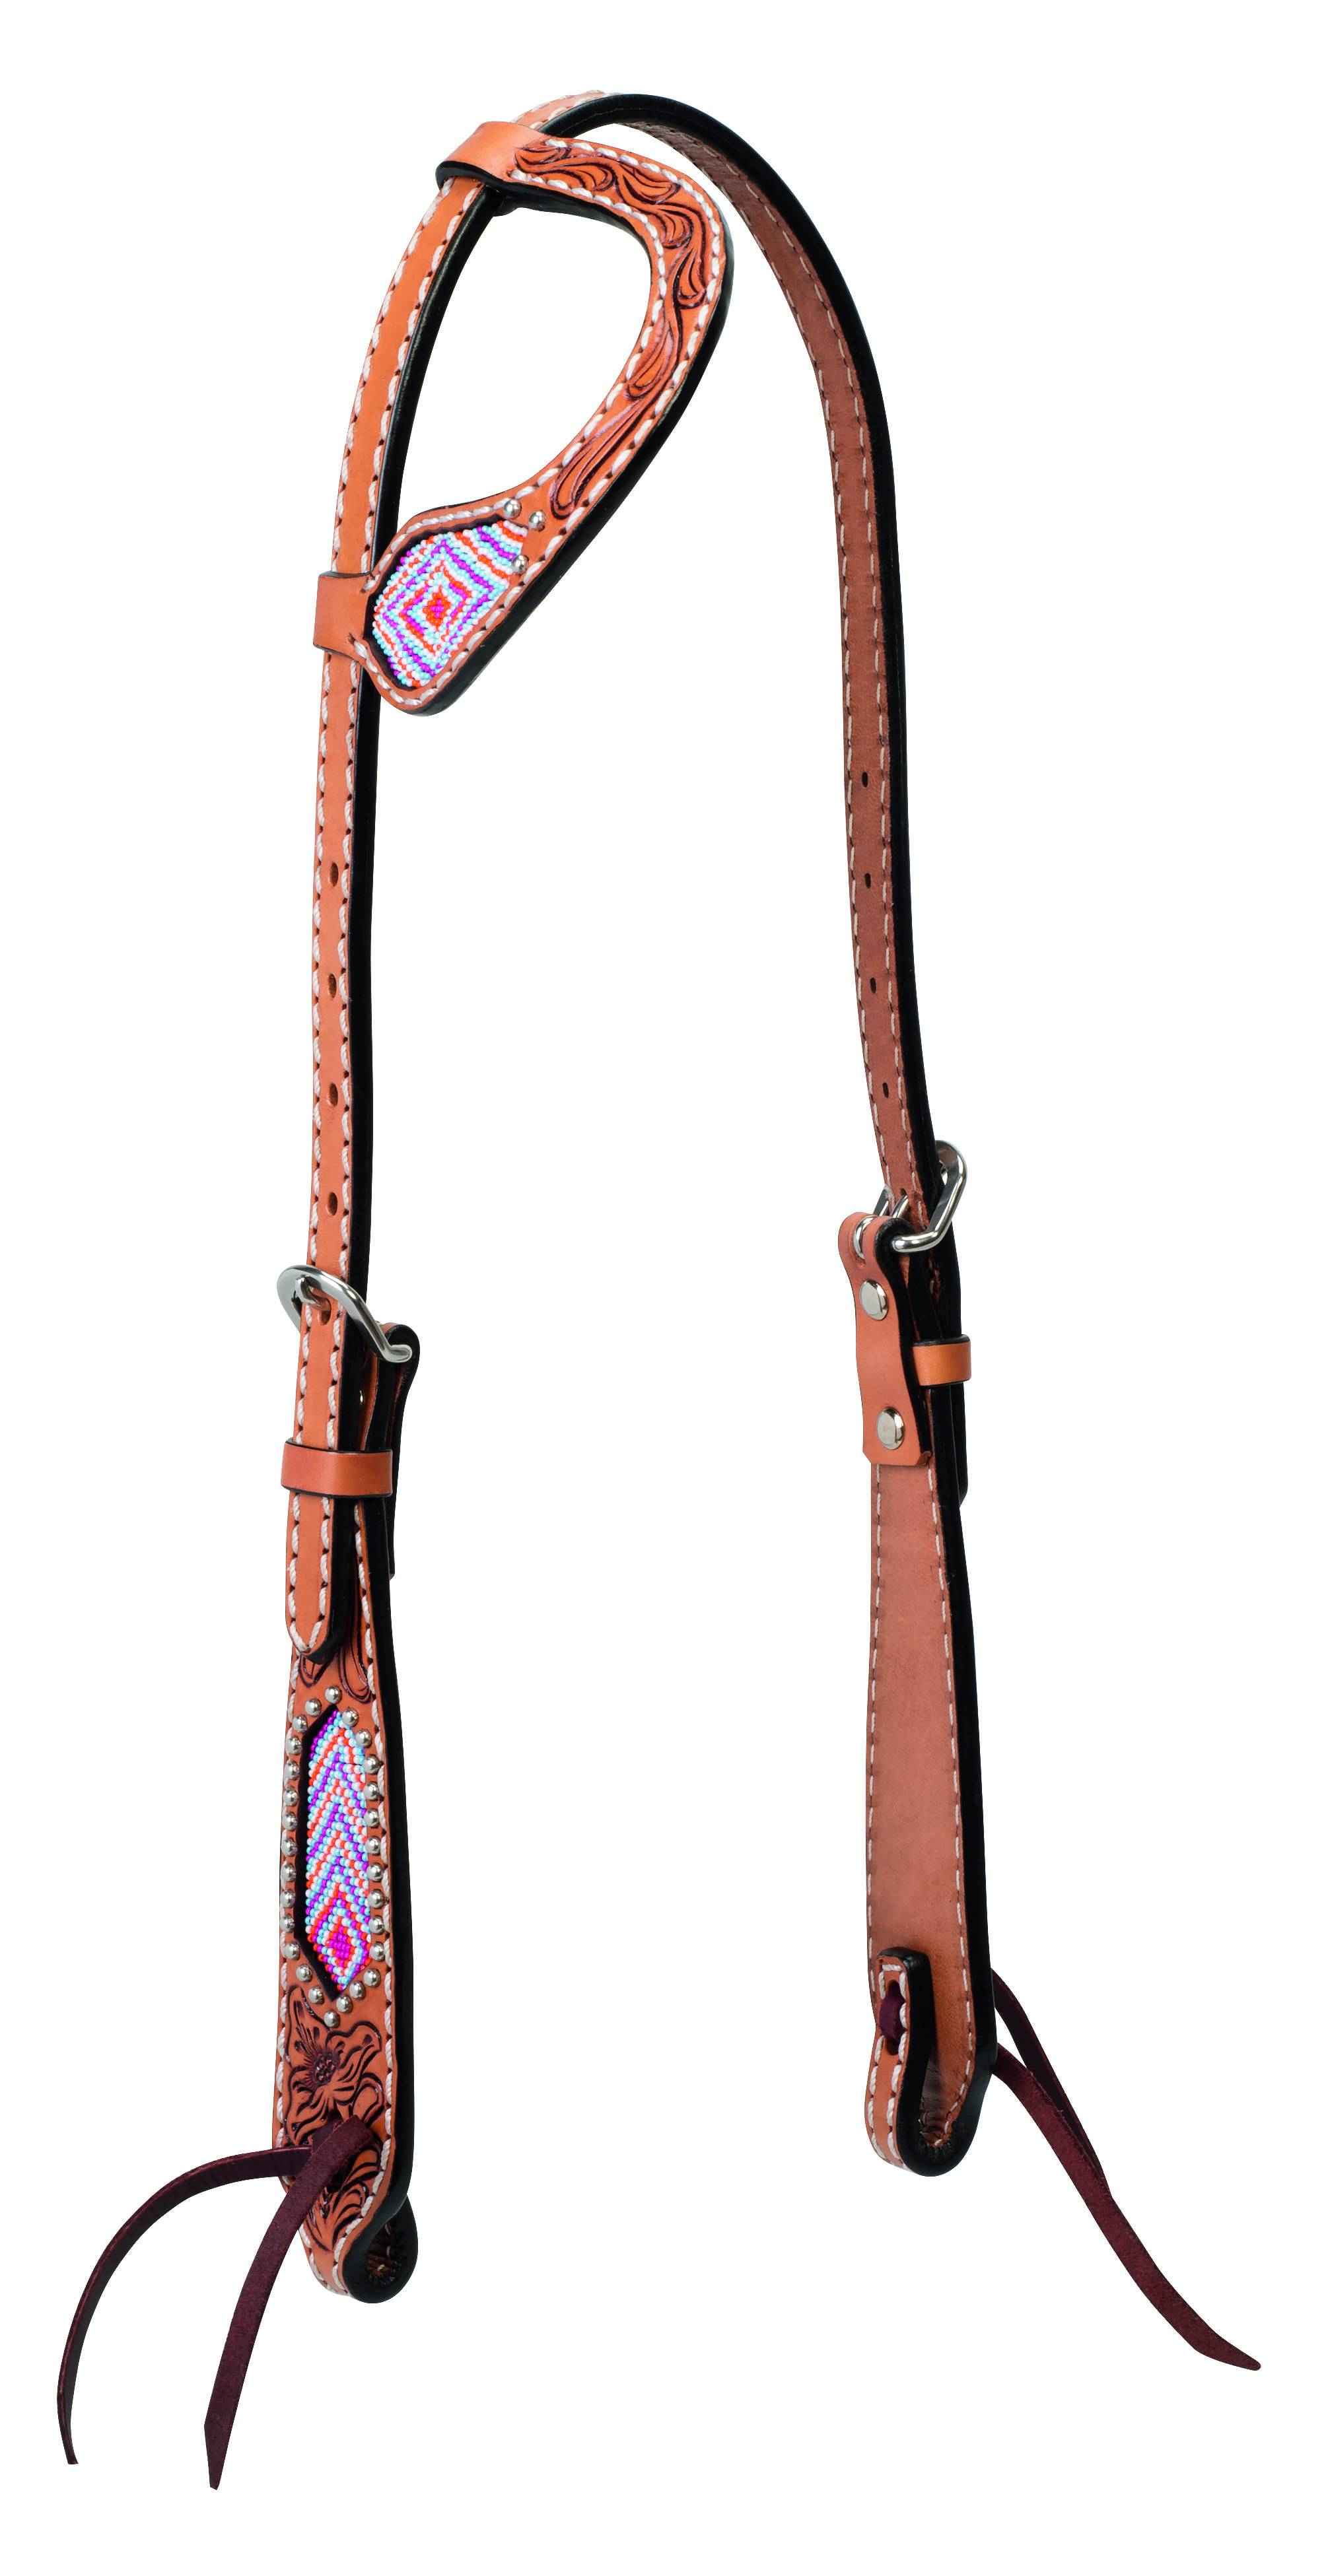 Weaver Diamond Beaded Sliding Ear Headstall